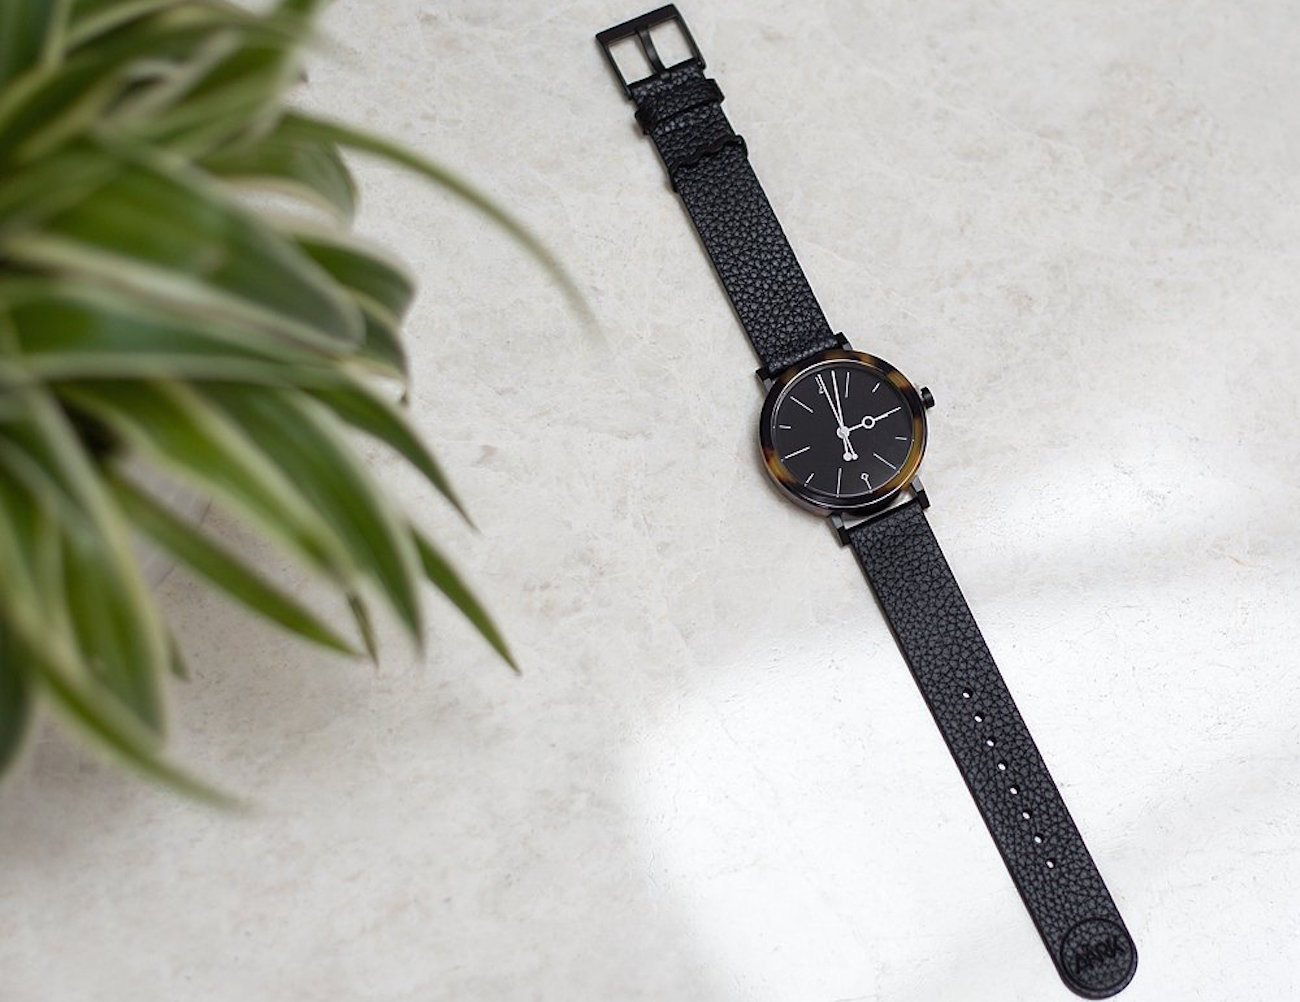 Shell+Brown+Tortoise+Watch+By+Aark+Collective